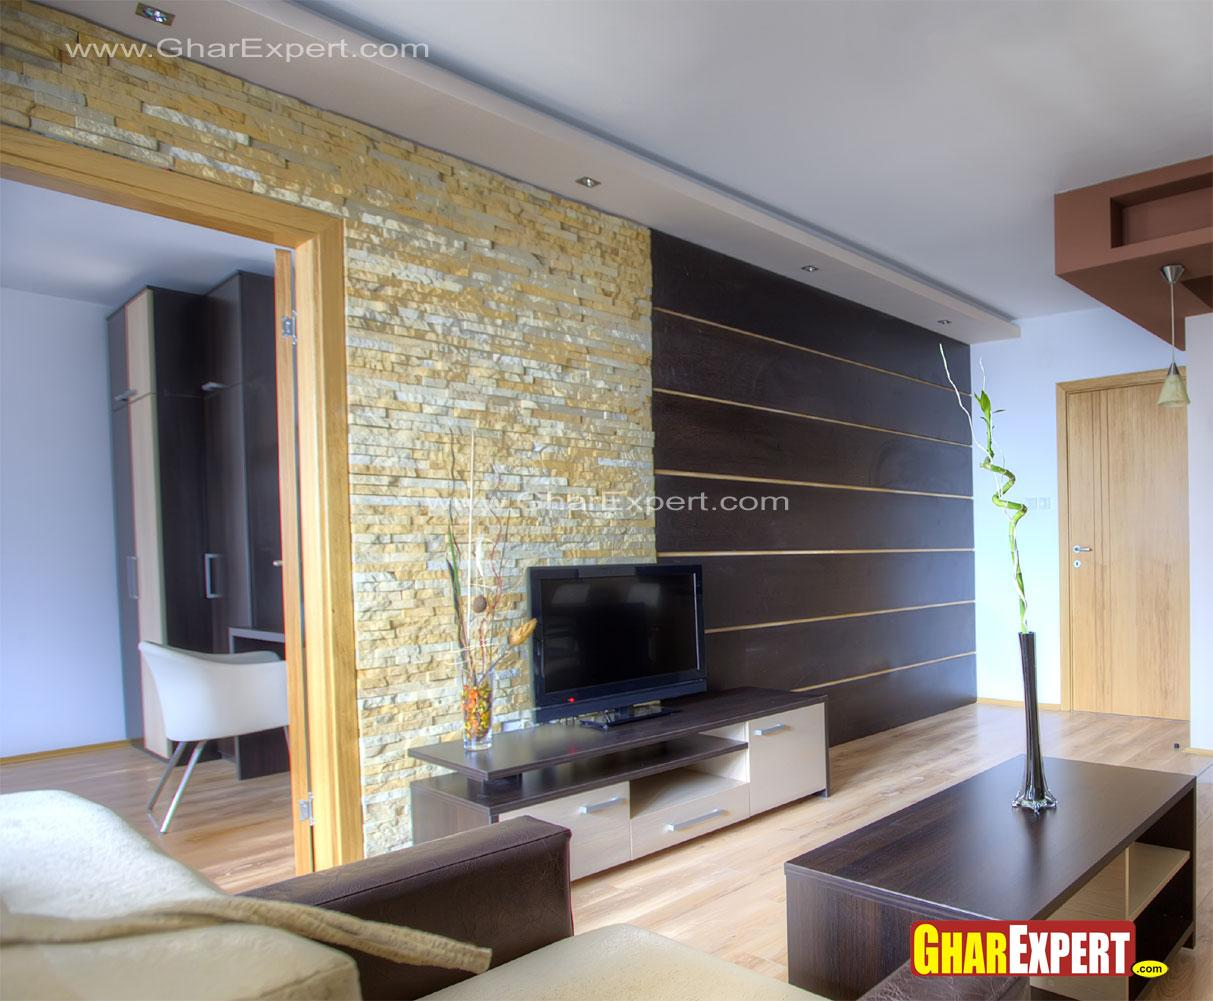 Lcd unit wall design in living room gharexpert for Lcd designs for living room